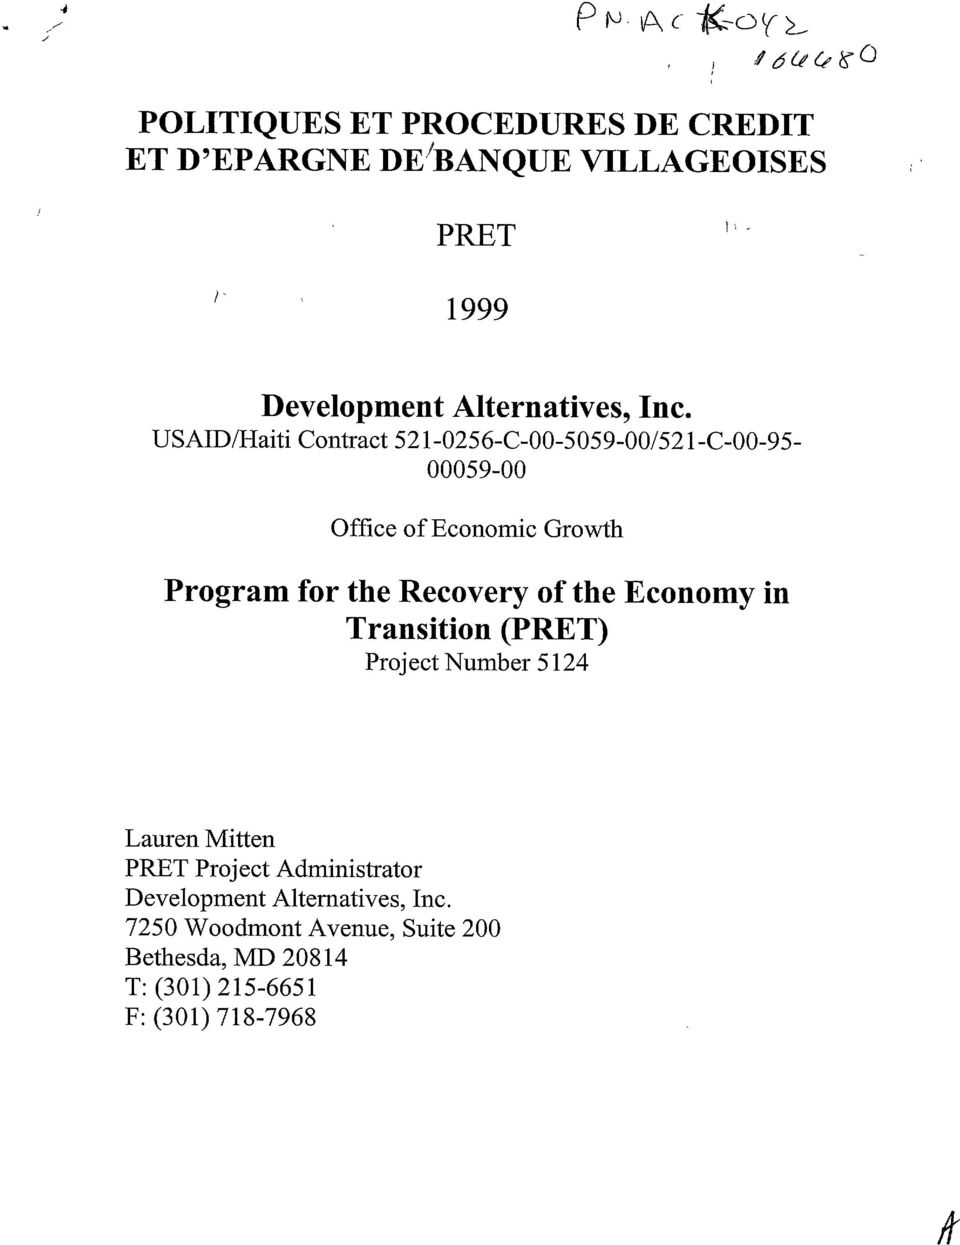 USAID/Haiti Contraet 521-0256-C-00-5059-00/521-C-00-95 00059-00 Office ofeconomie Growth Program for the Recovery of